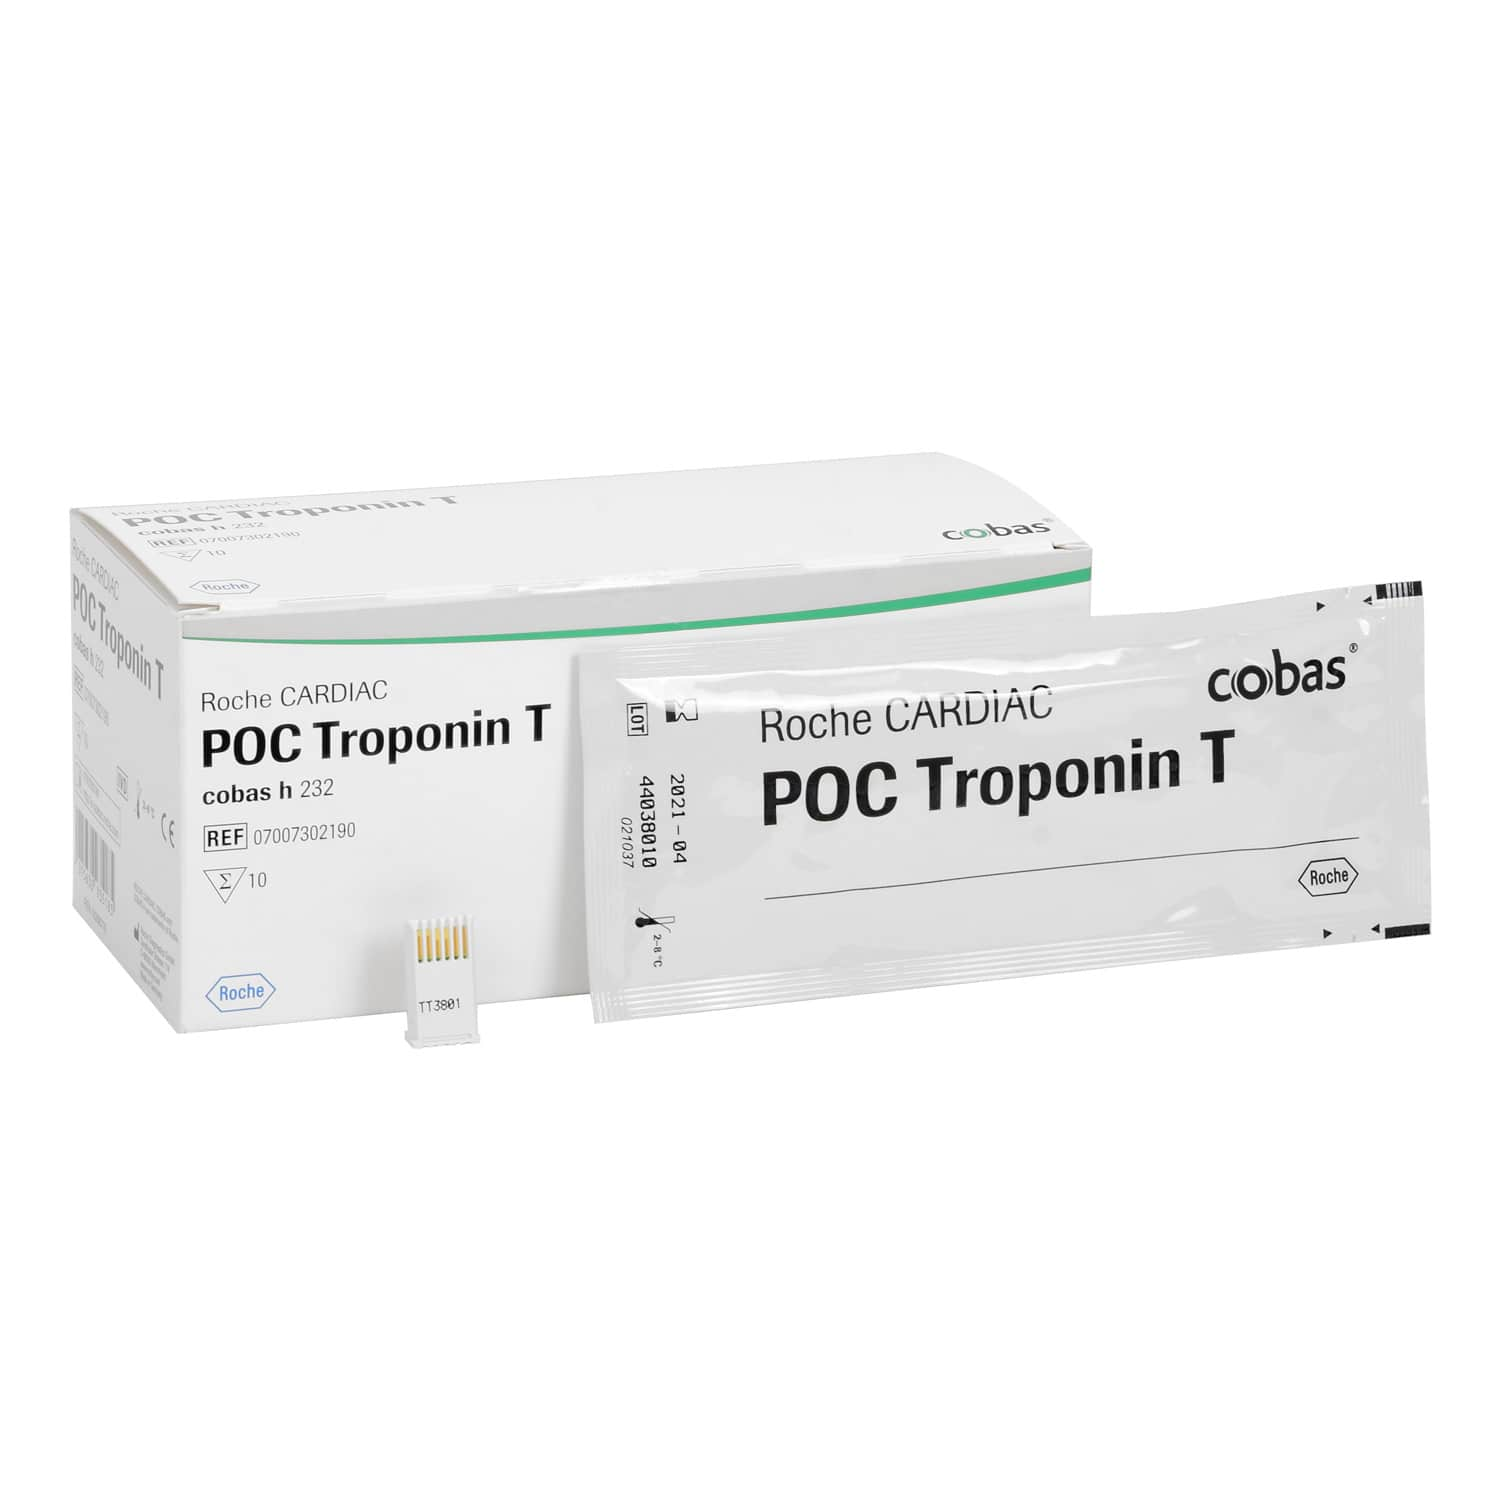 https://static.praxisdienst.com/out/pictures/generated/product/1/1500_1500_100/135788_roche_poc_troponin_t_1.jpg